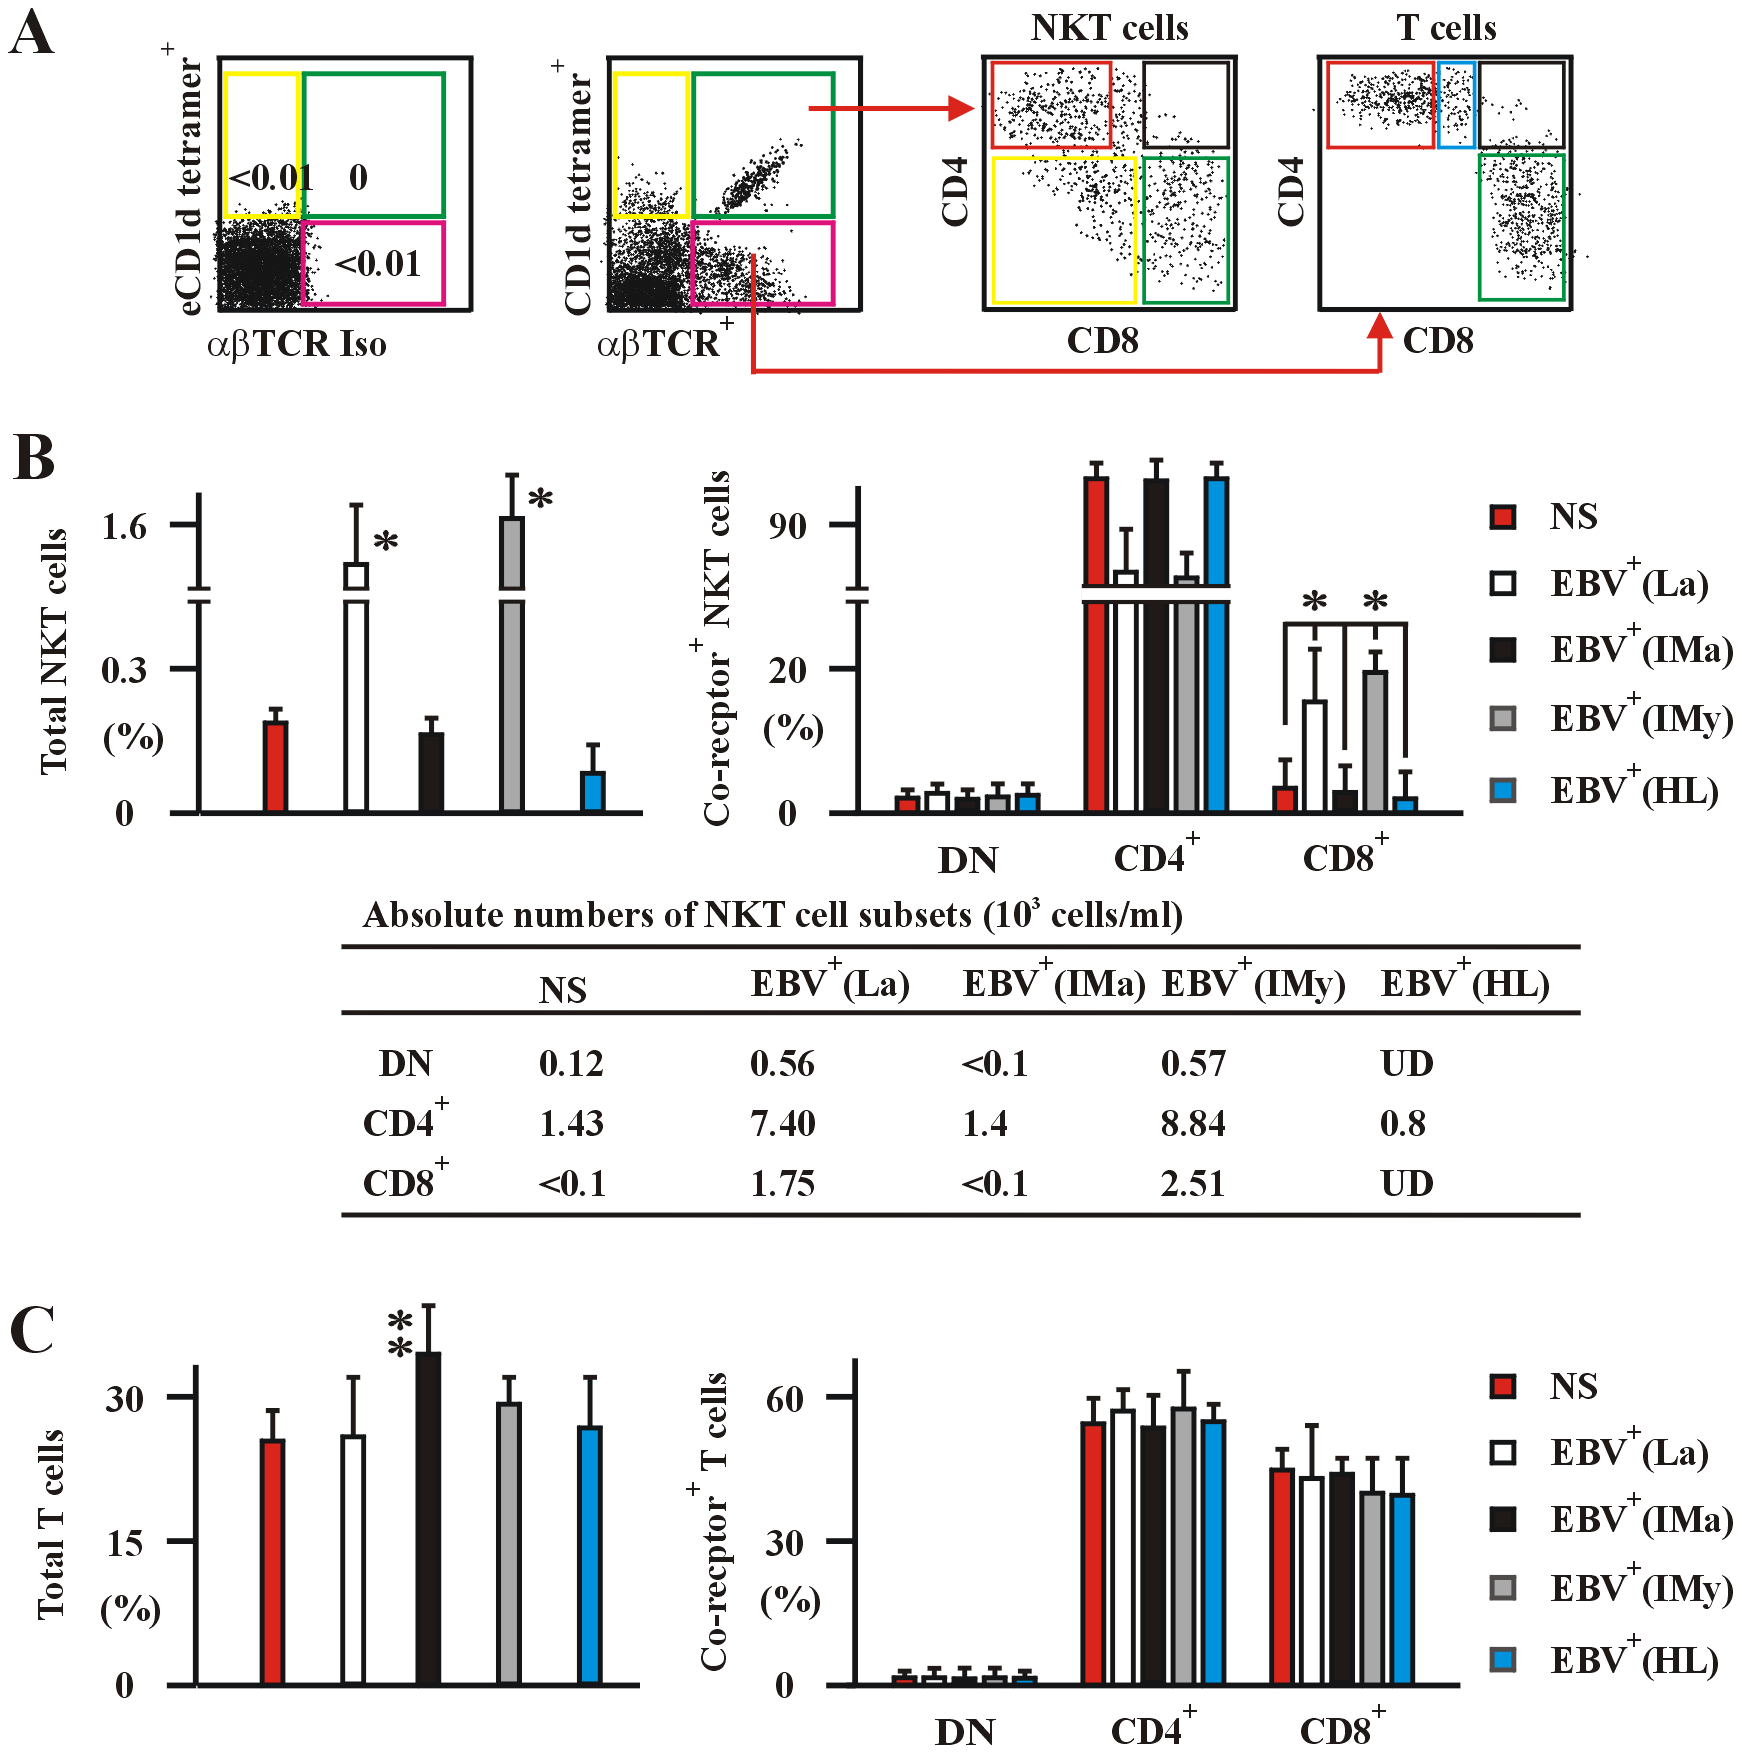 Human NKT and T cells in the various EBV-infected and non-infected subjects.